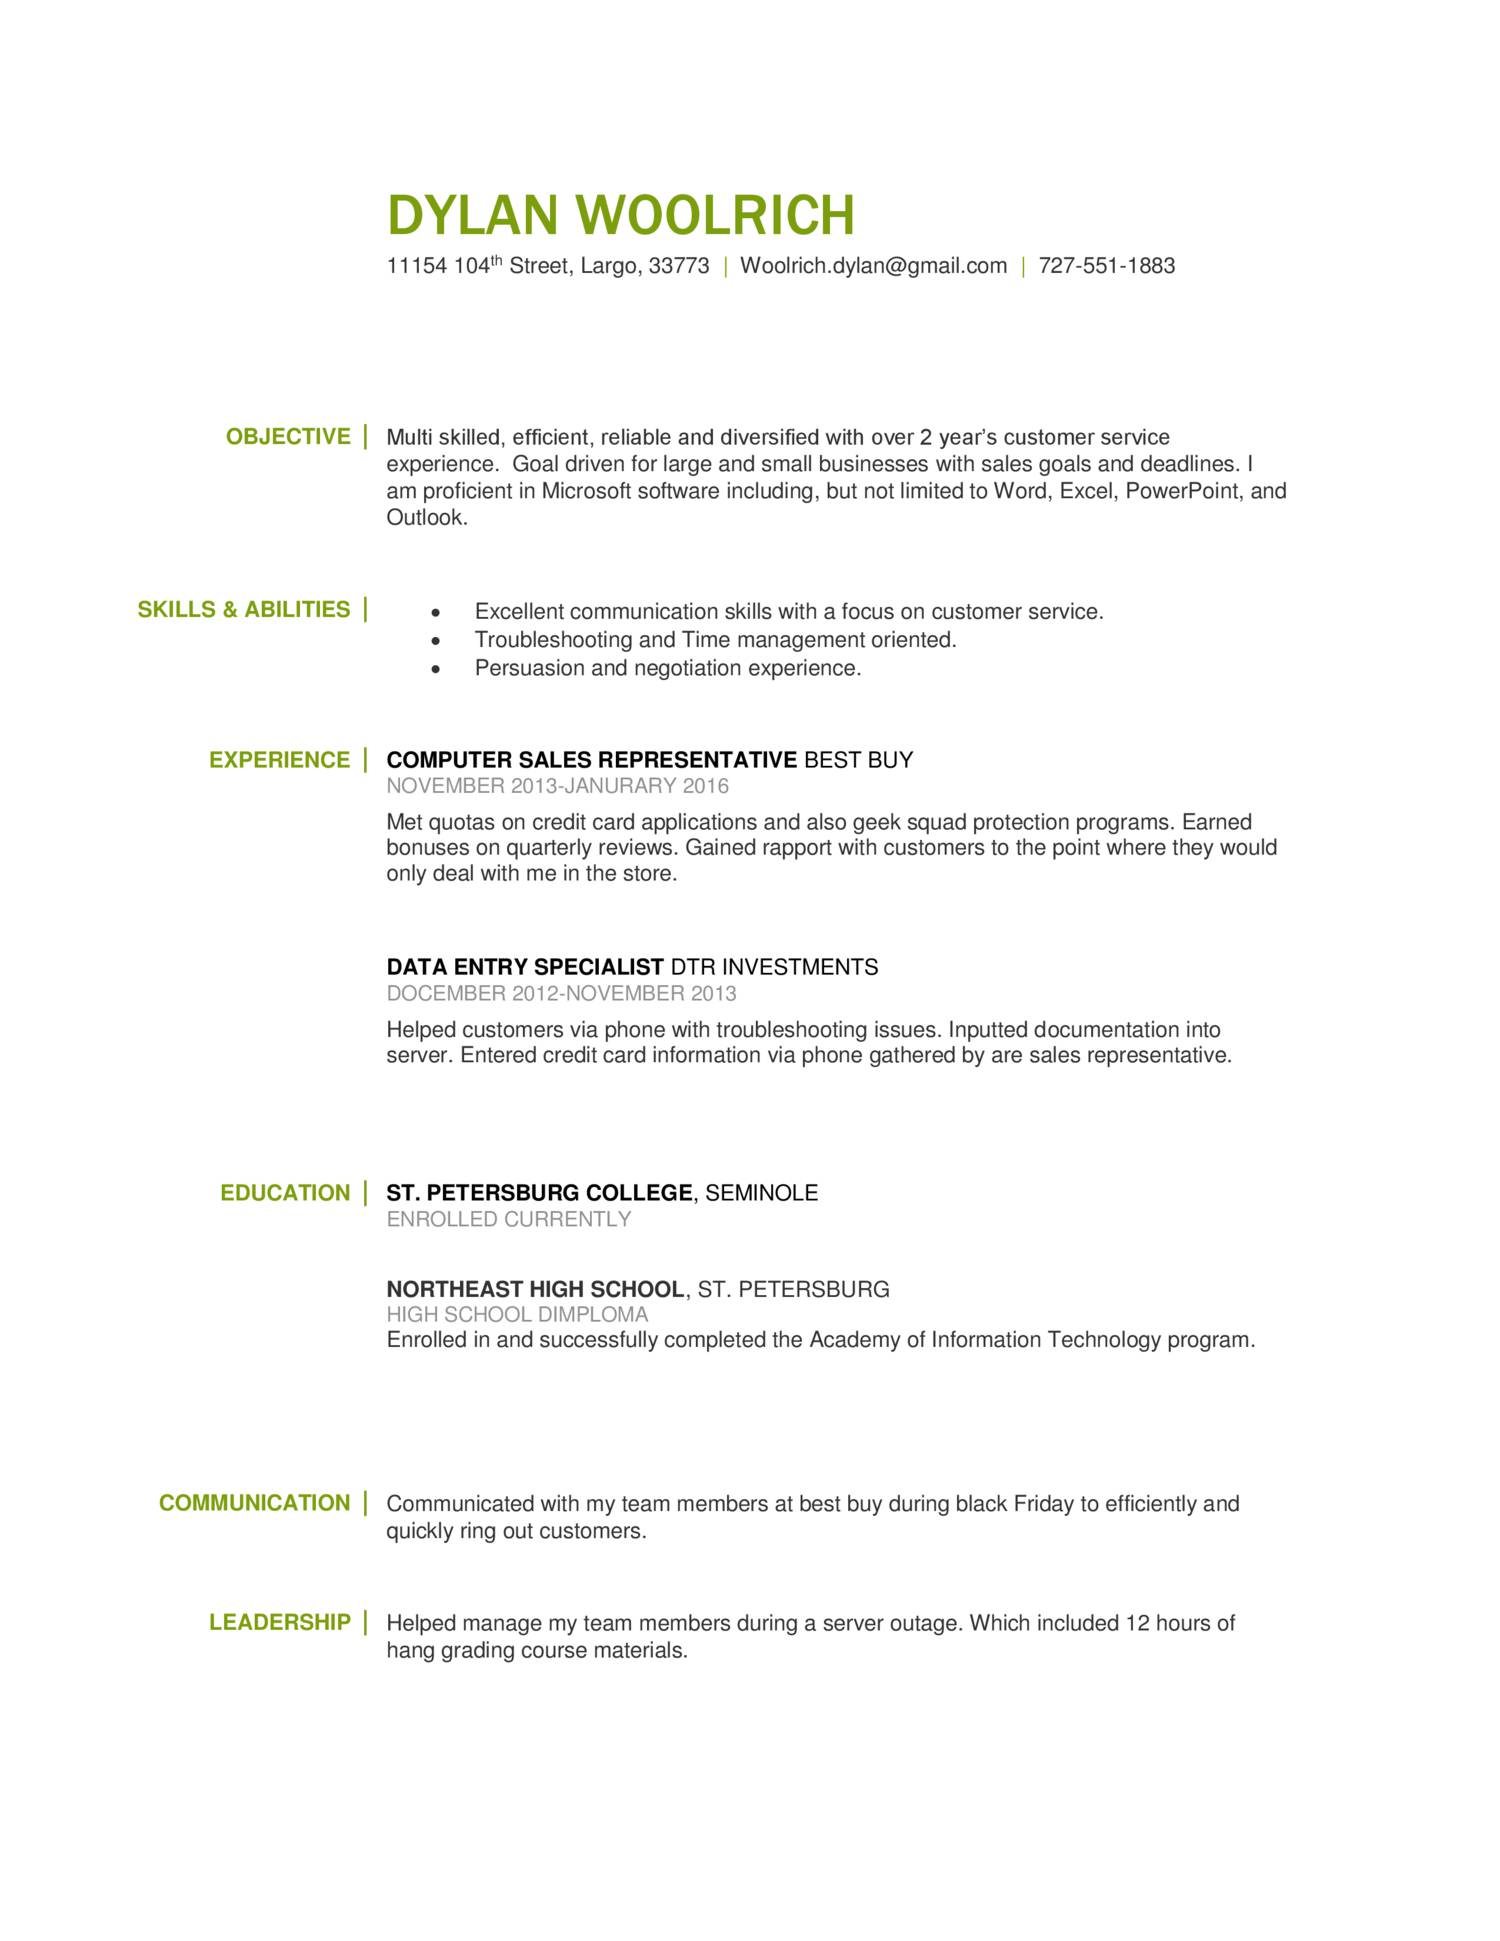 geek squad resume